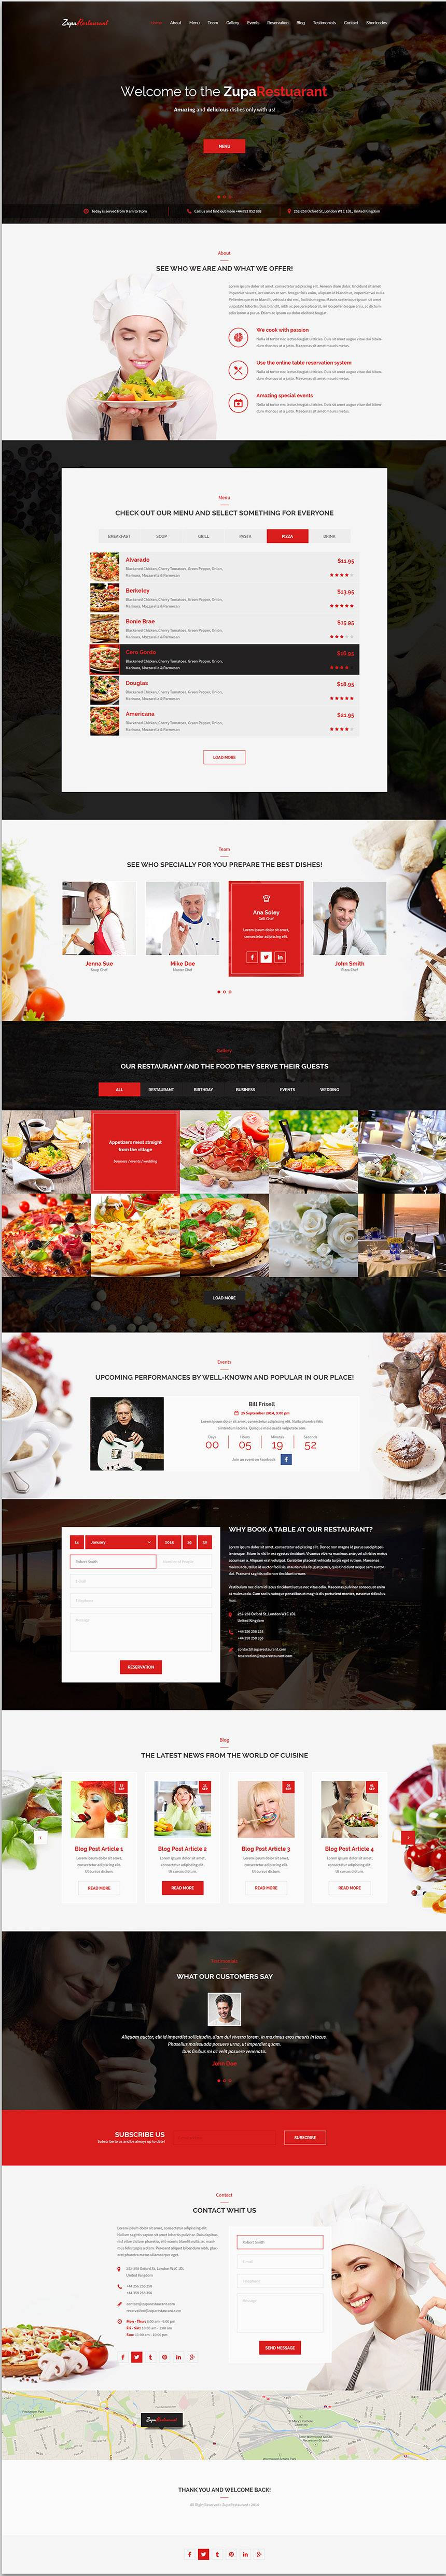 Restaurant Website Templates Psd Free Download